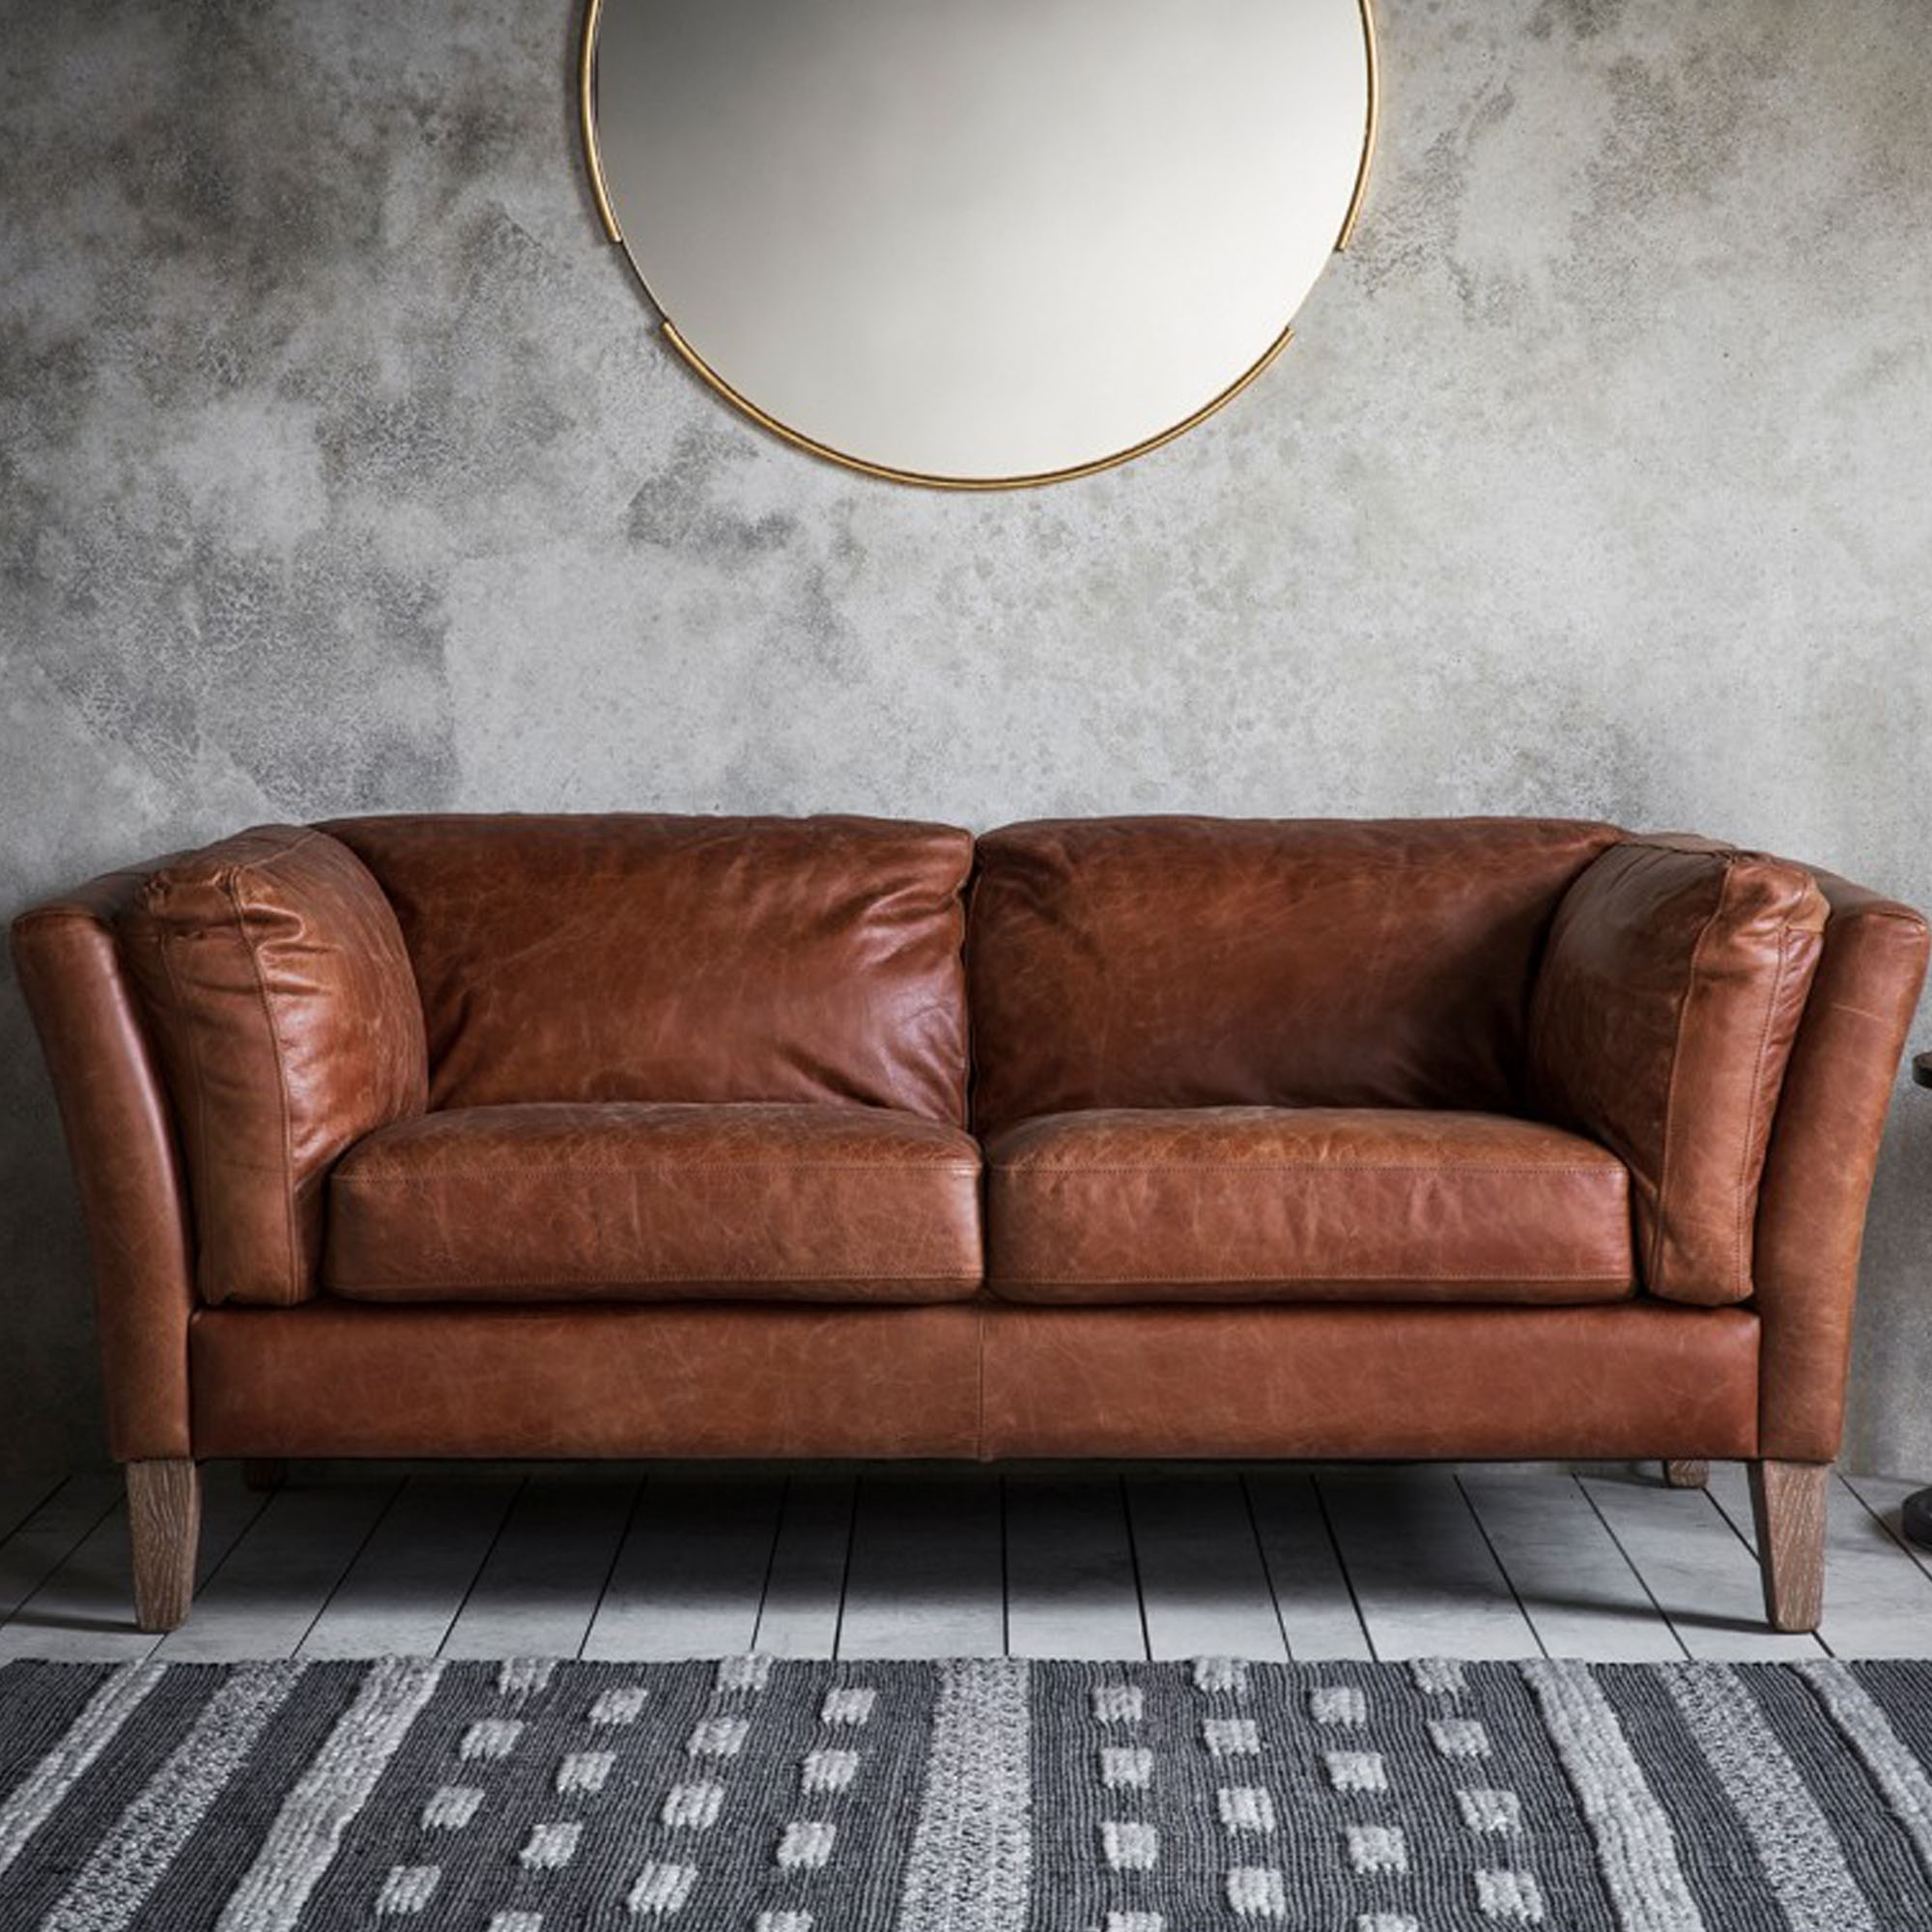 Ebury 2 Seater Sofa | Brown 2 Seater Sofas | Brown Leather For Two Seater Sofas (View 2 of 15)